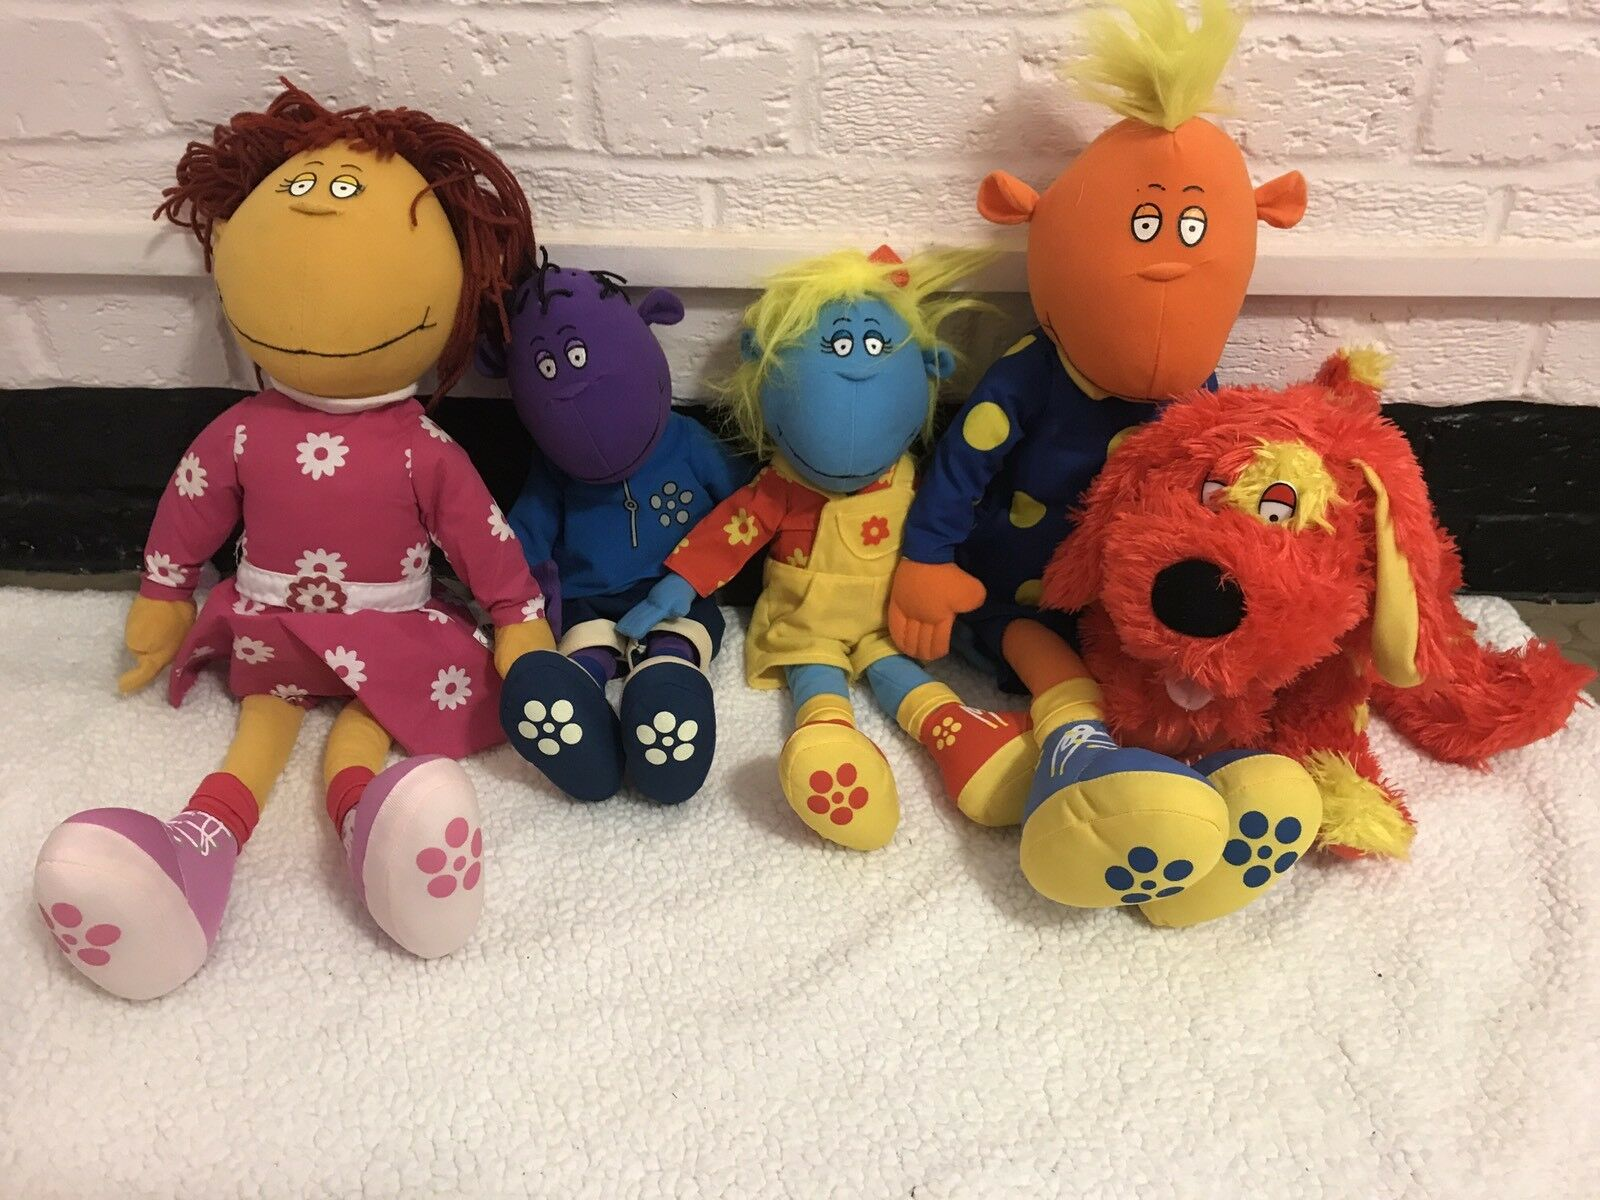 Full Set Of Tweenies Soft Toys Including Doodles Plush Bundle